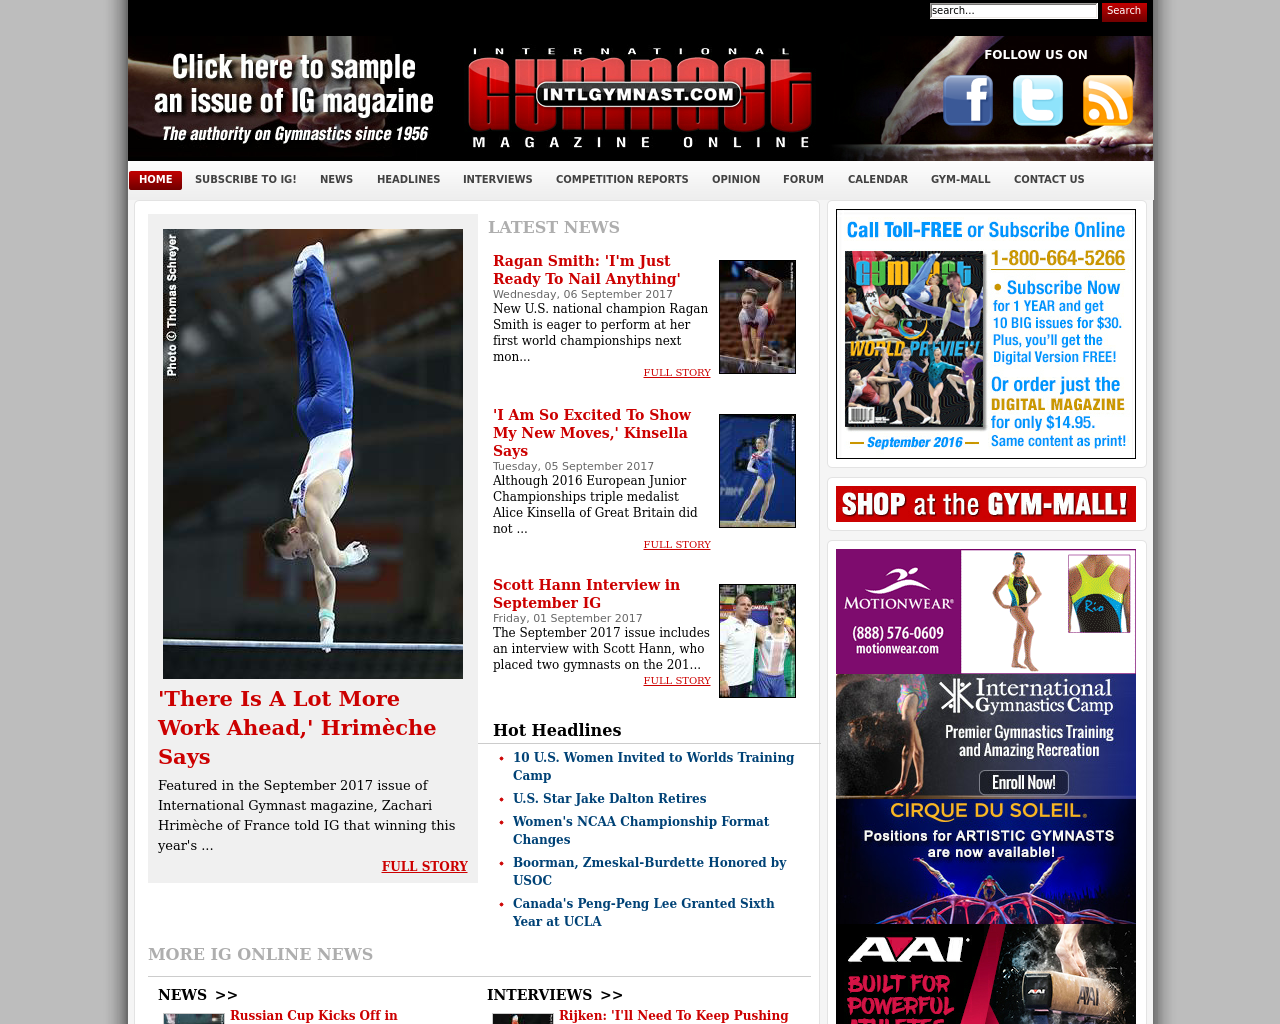 International-Gymnast-Magazine-Online-Advertising-Reviews-Pricing